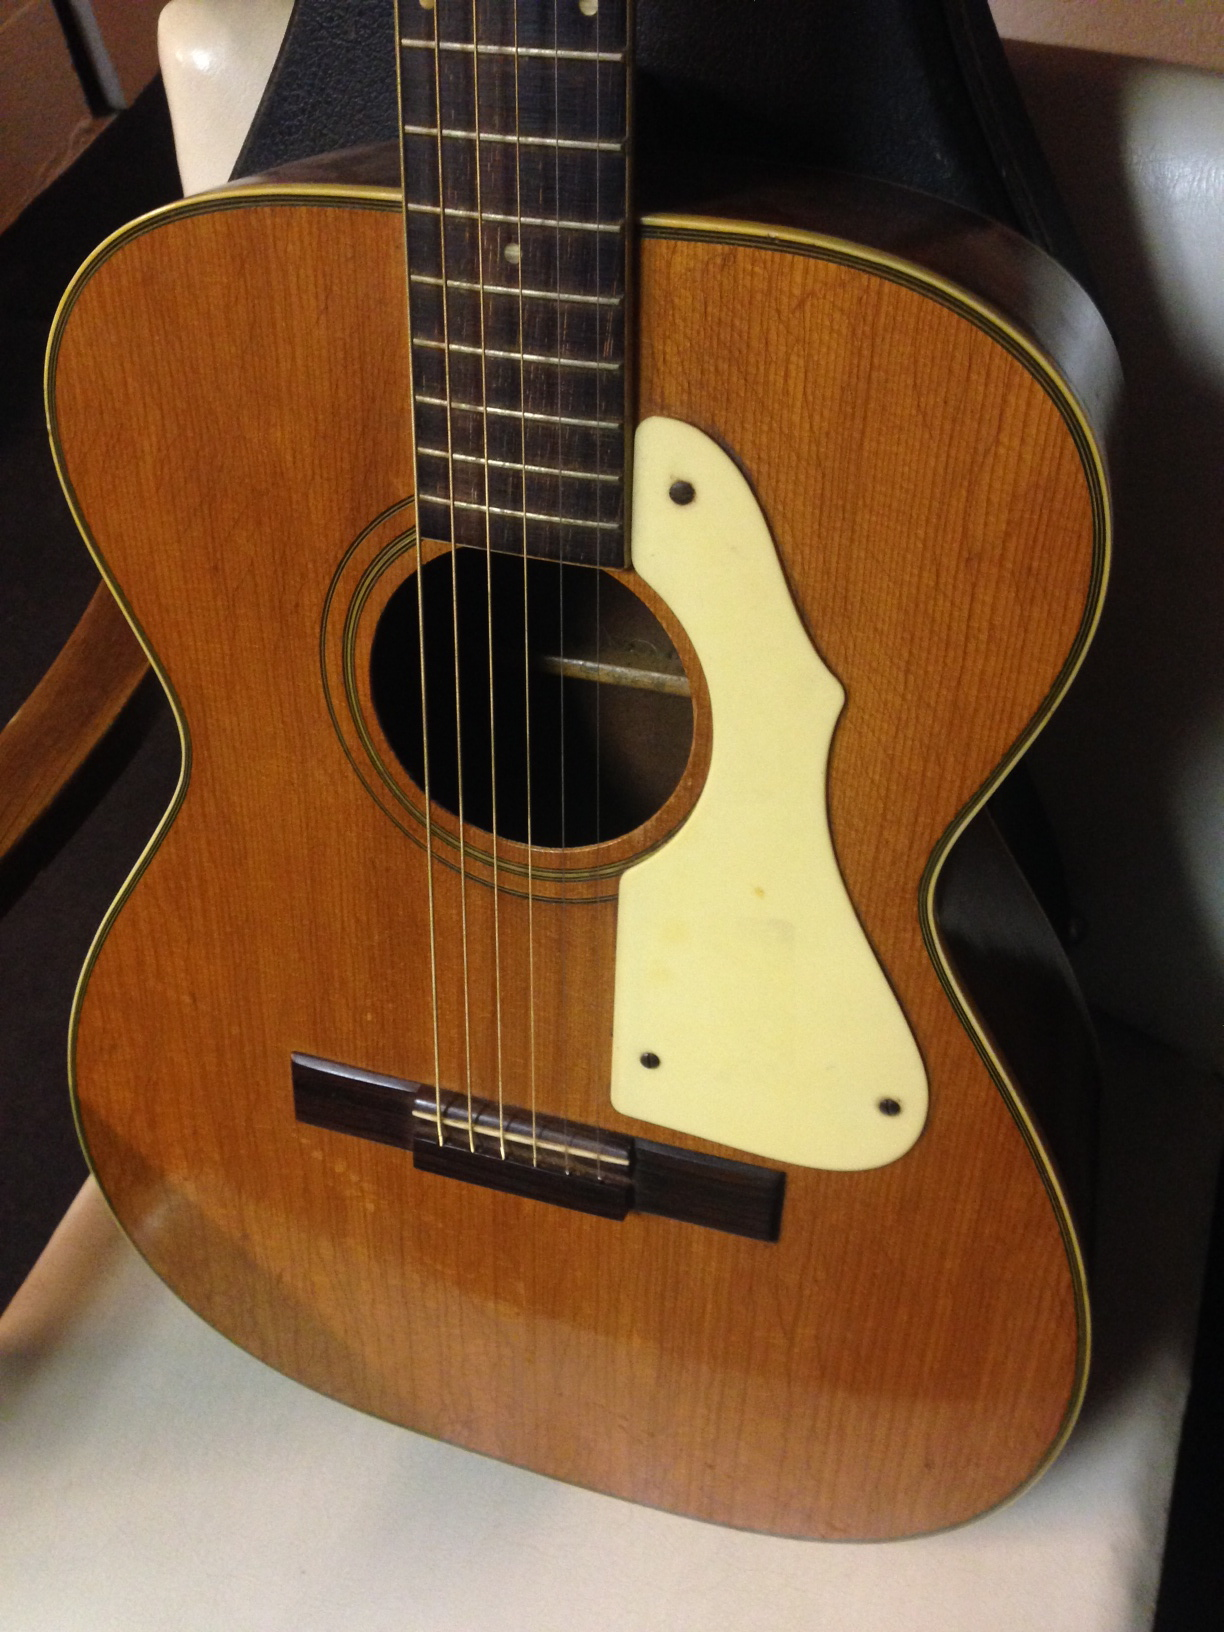 harmony sovereign model acoustic guitar cool vintage slide guitar as is ebay. Black Bedroom Furniture Sets. Home Design Ideas